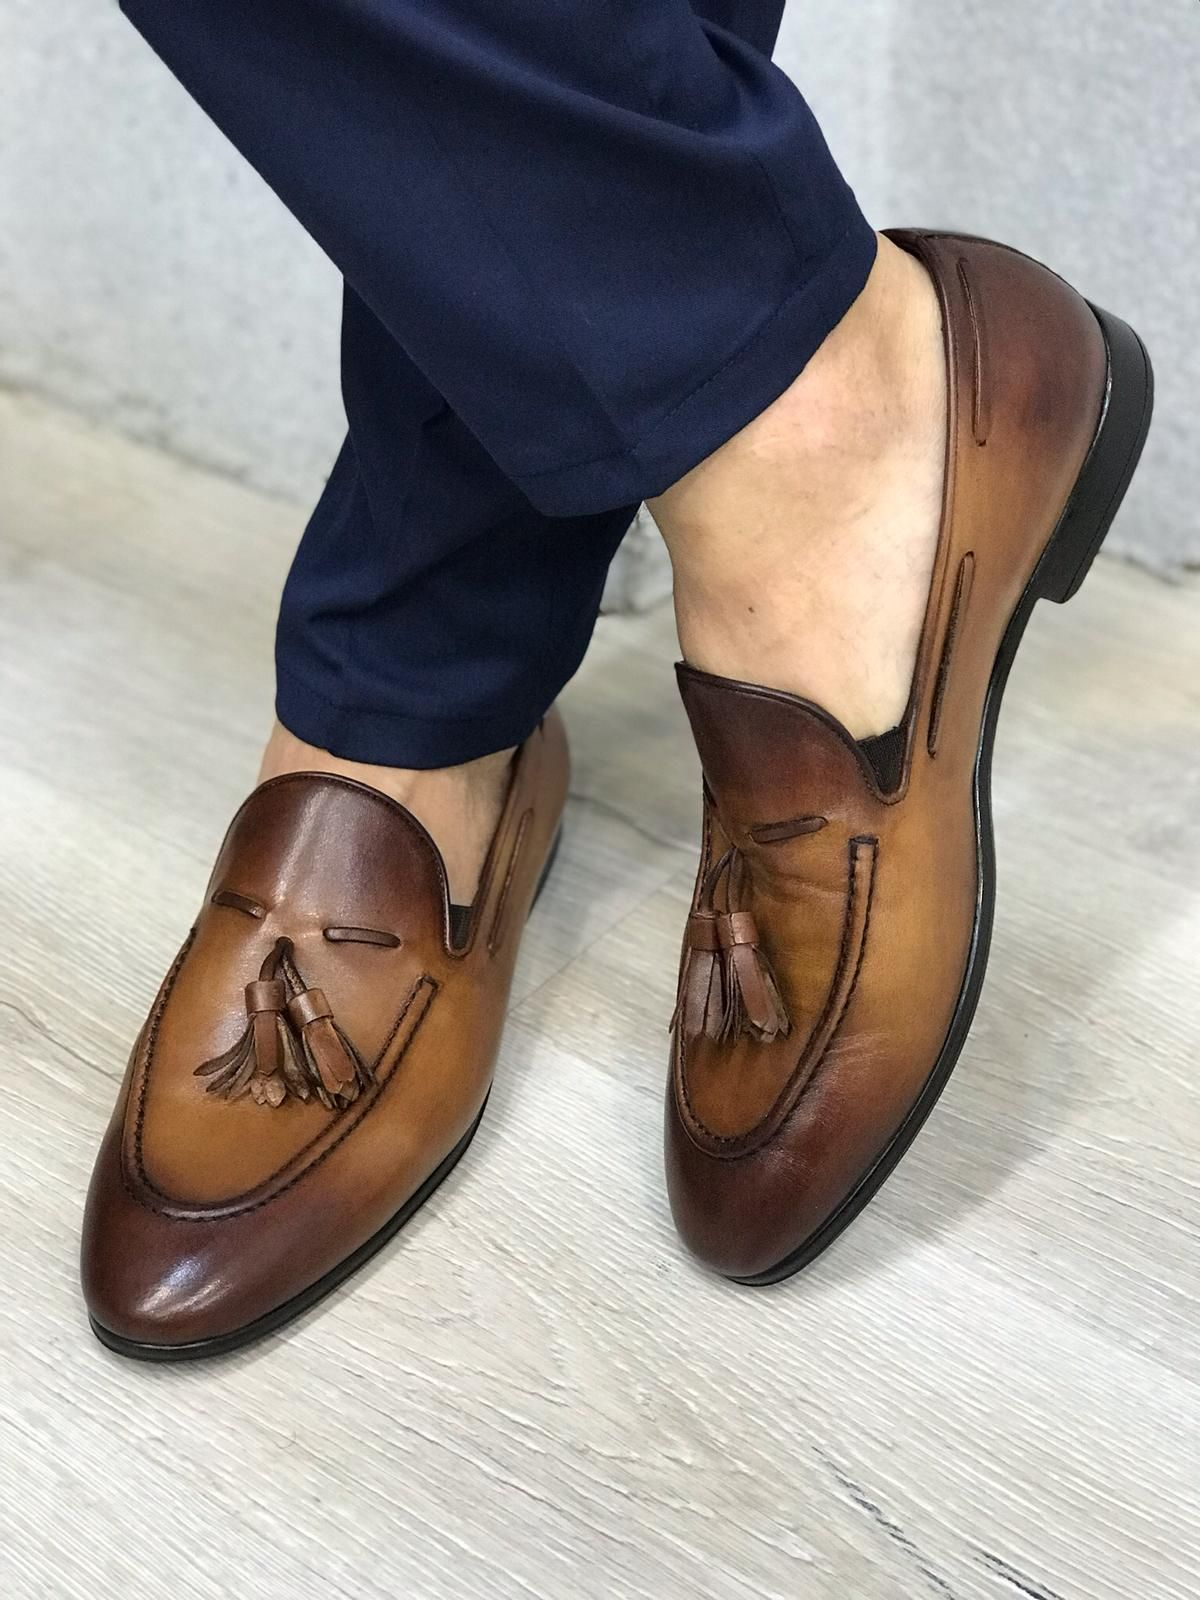 Antique Taba Leather Shoes - Aysoti